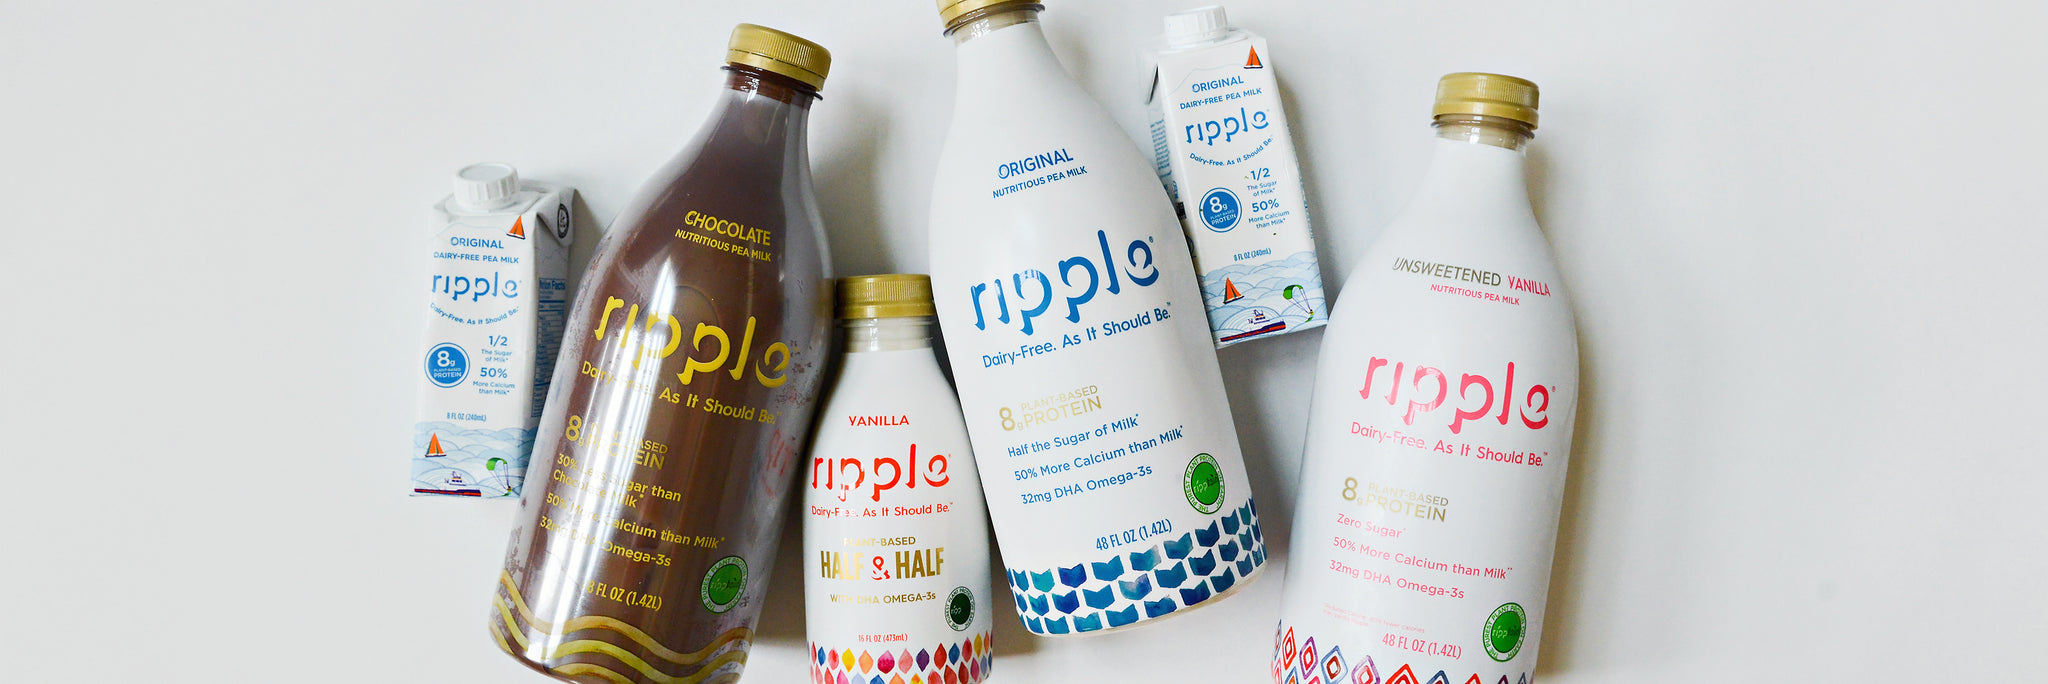 50% OFf Ripple Beverages